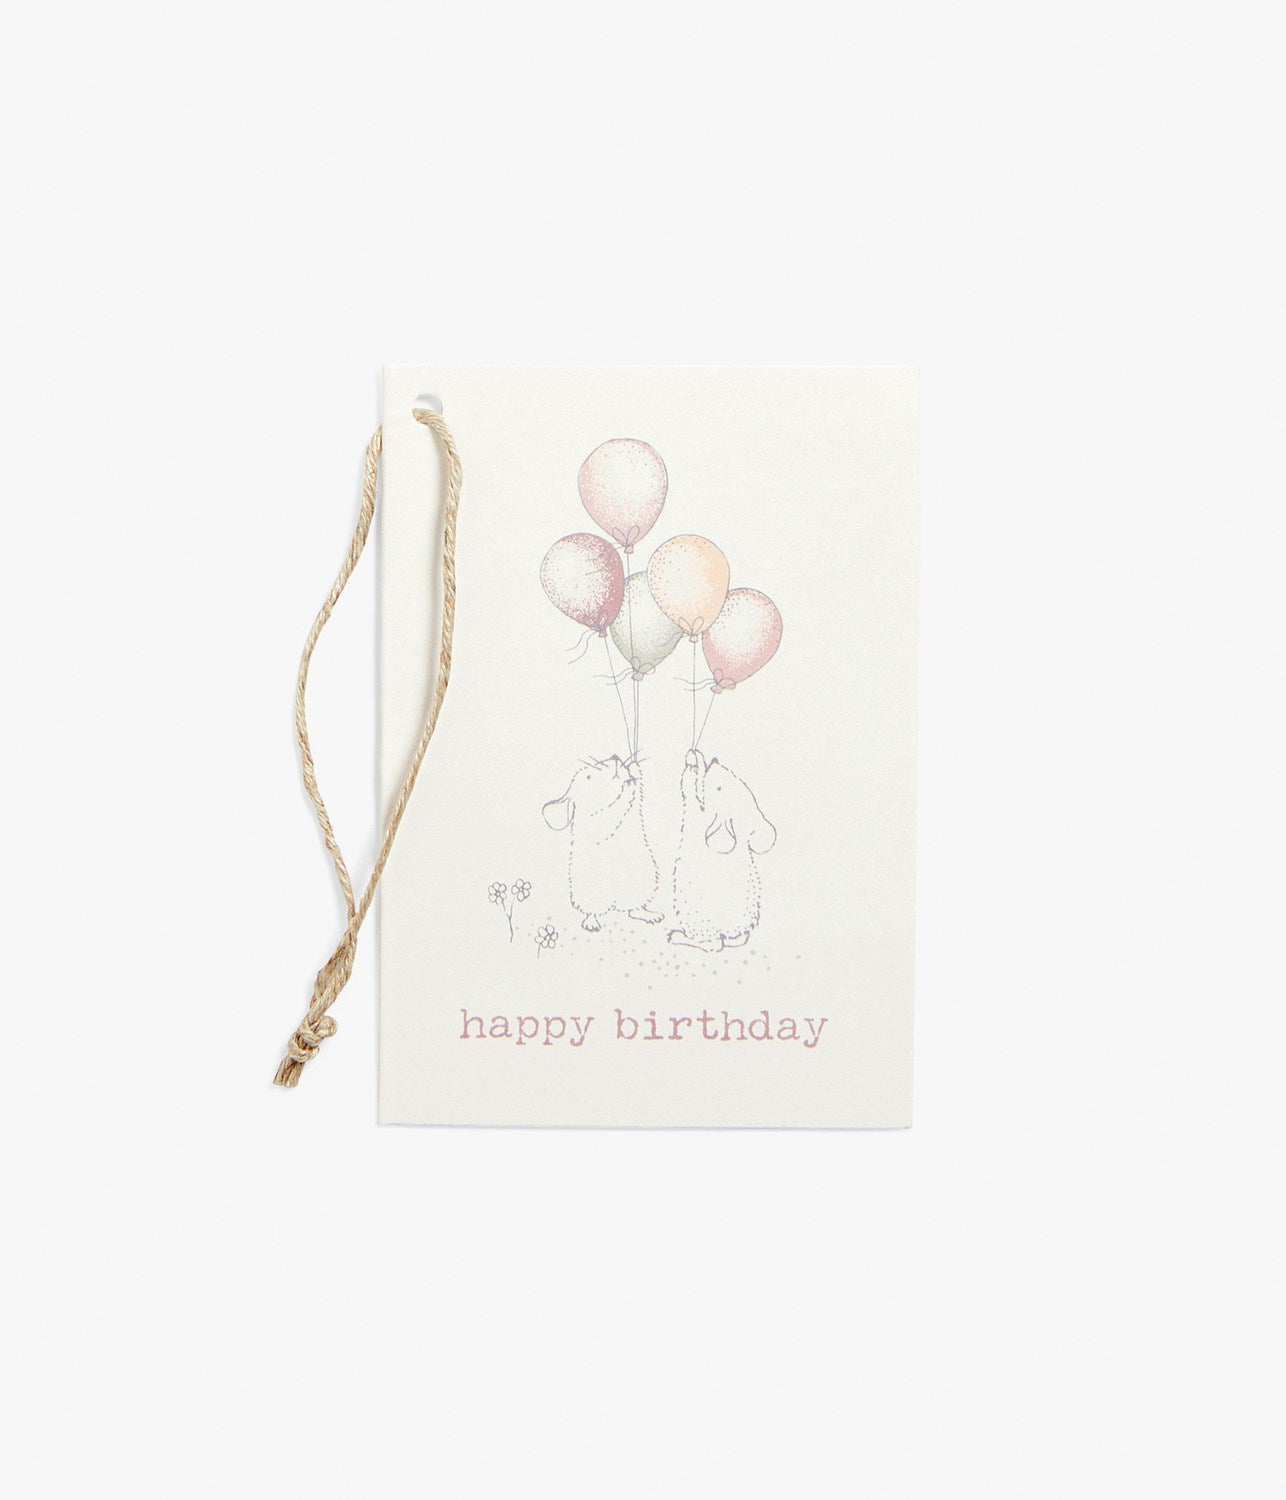 Gift tag with balloon print